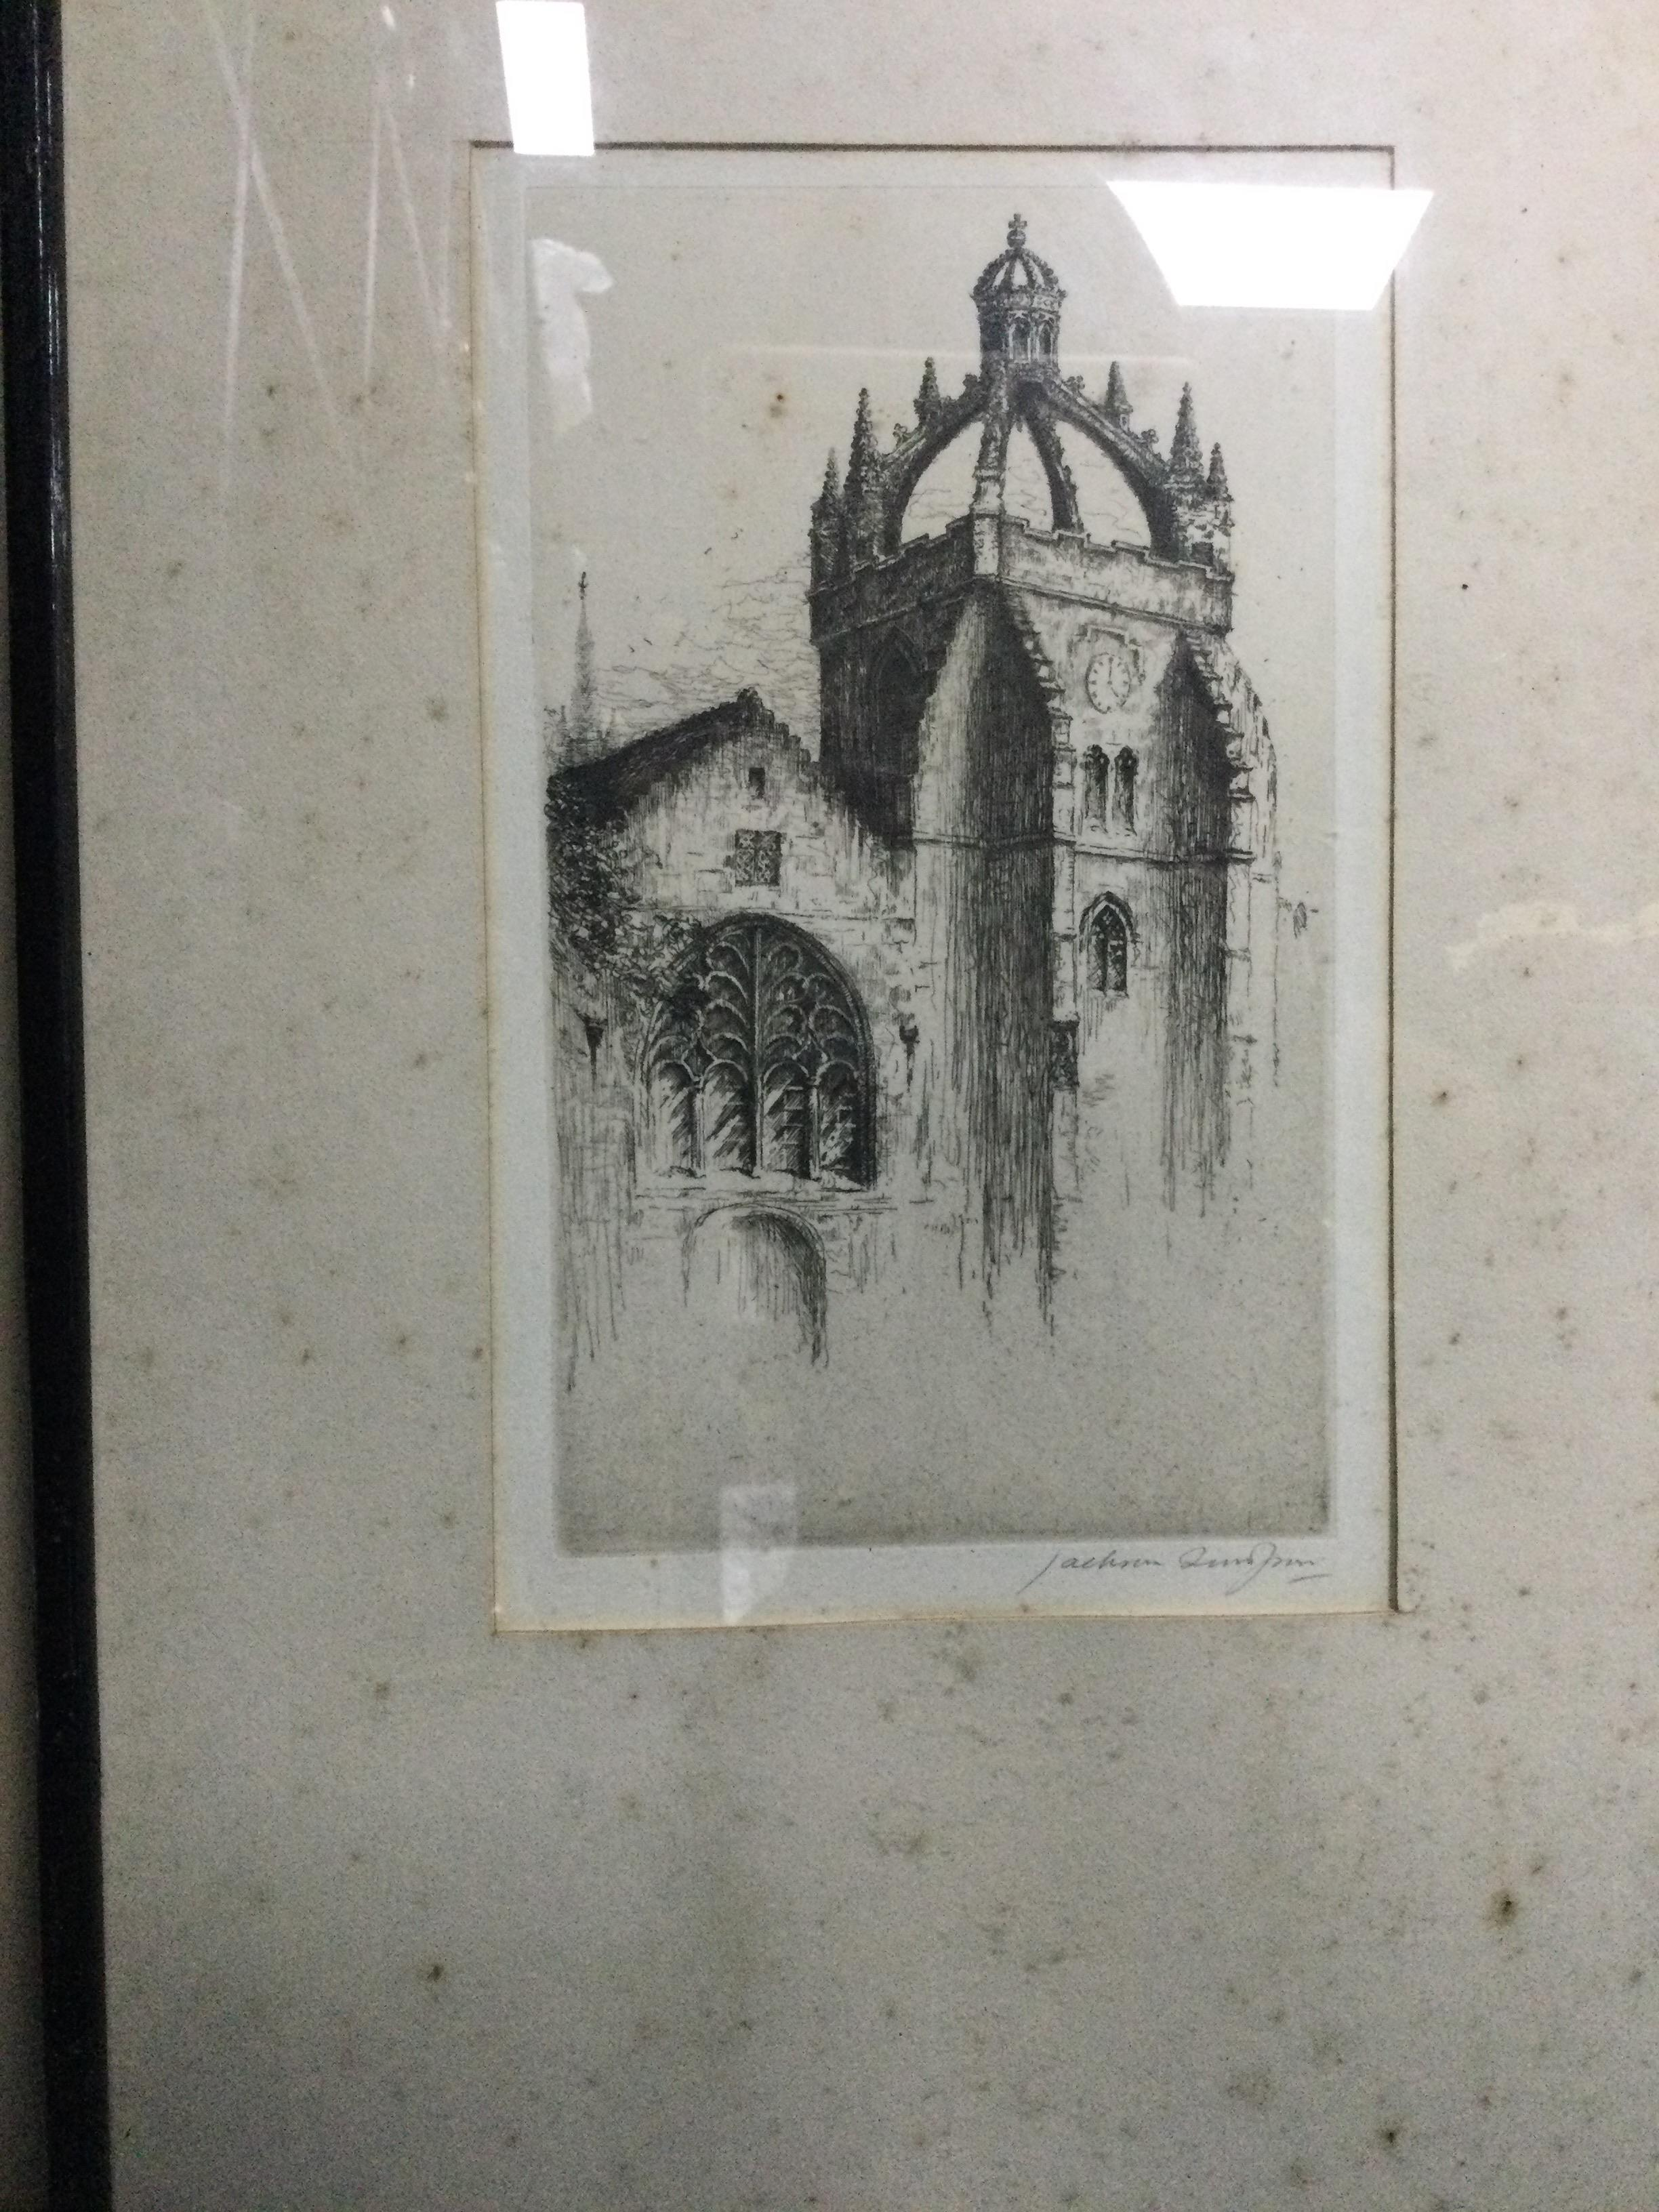 A COLLECTION OF VARIOUS ETCHINGS - Image 2 of 3